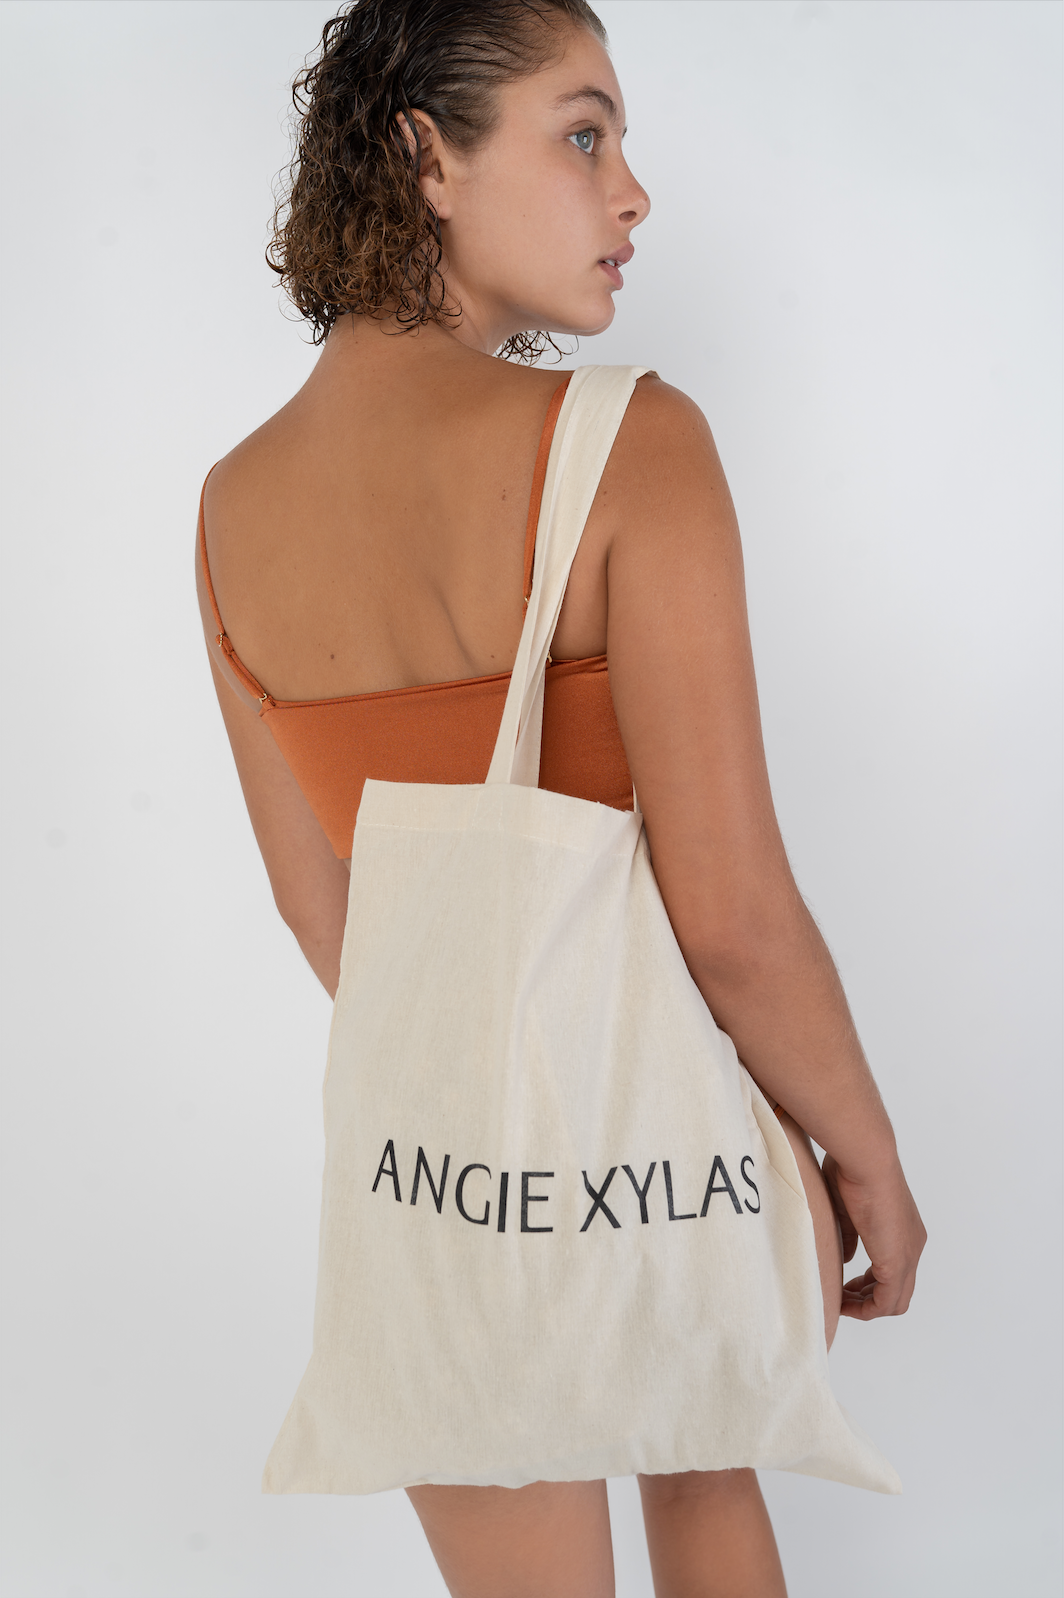 ΑΞ CANVAS TOTE BAG